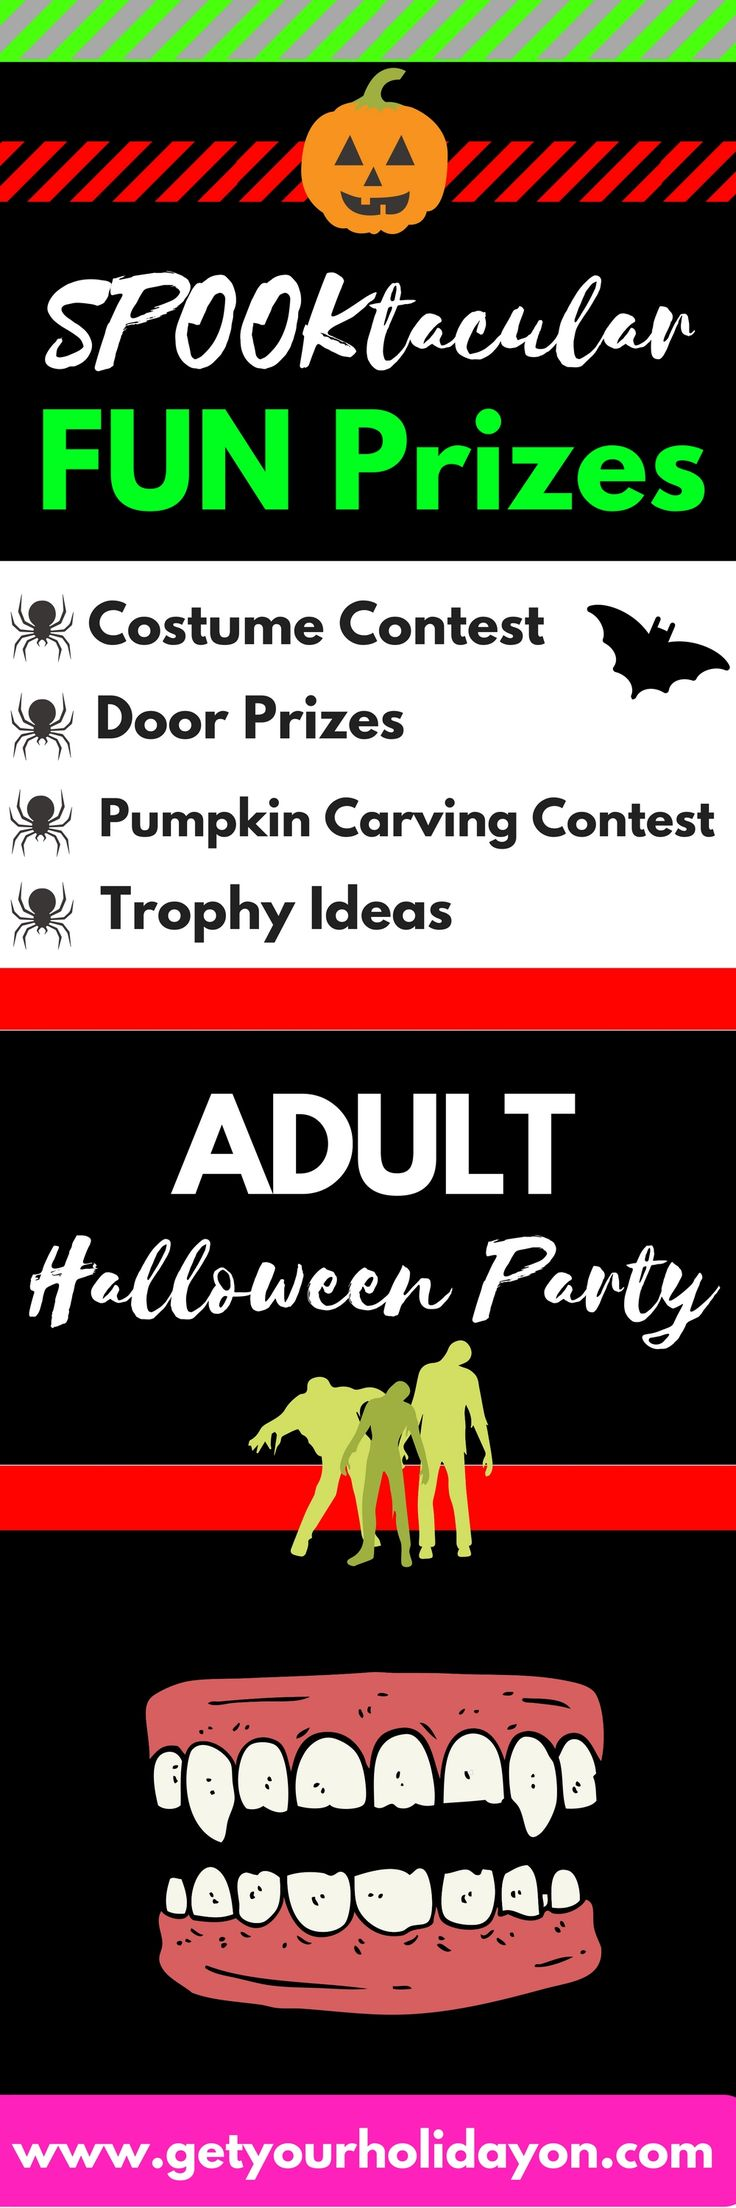 1443 best >> Halloween images on Pinterest | Halloween party ideas ...